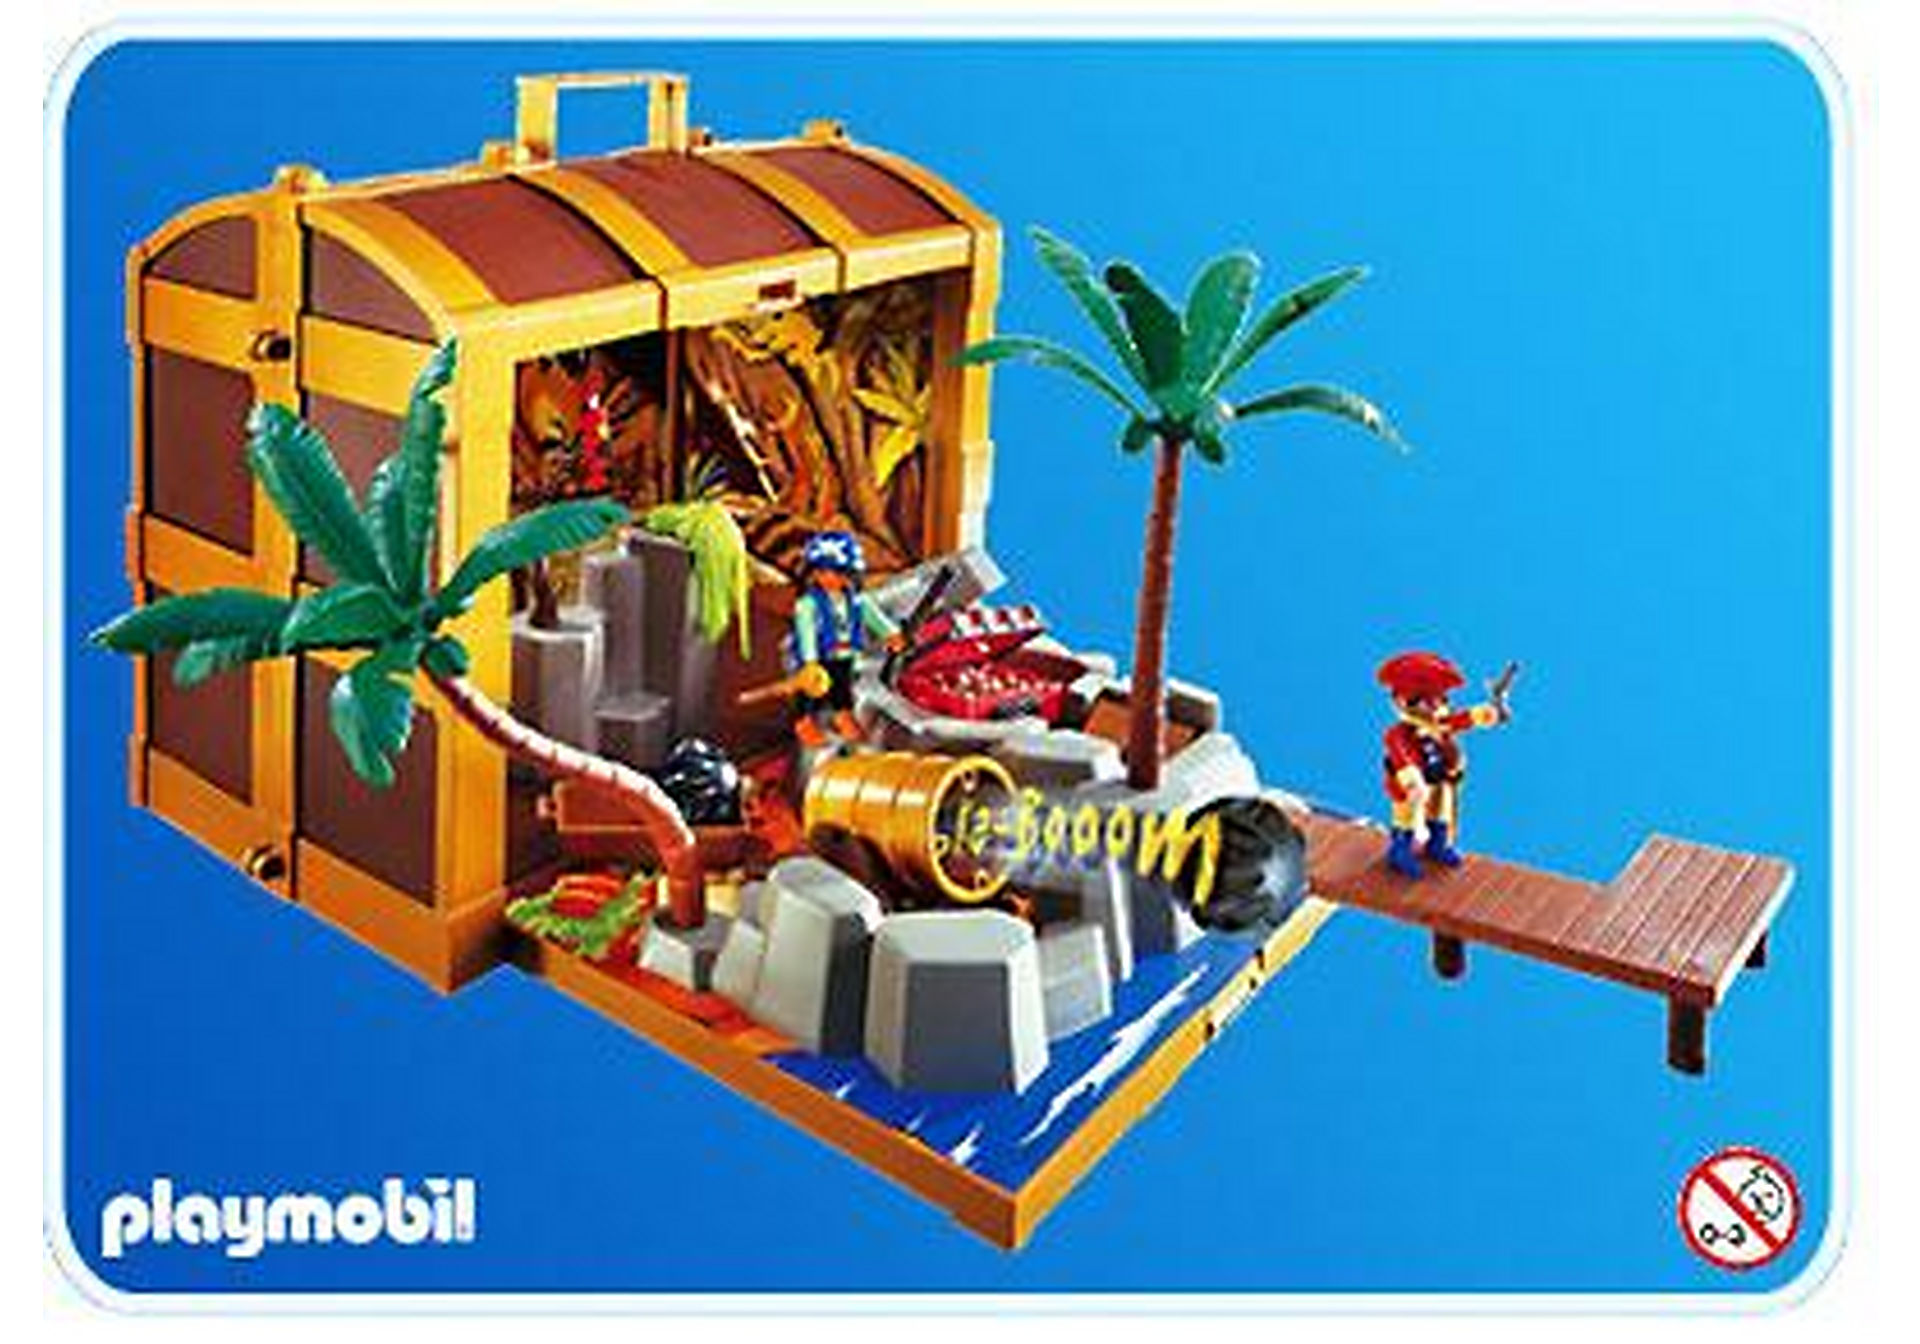 http://media.playmobil.com/i/playmobil/4432-A_product_detail/Piratenschatztruhe